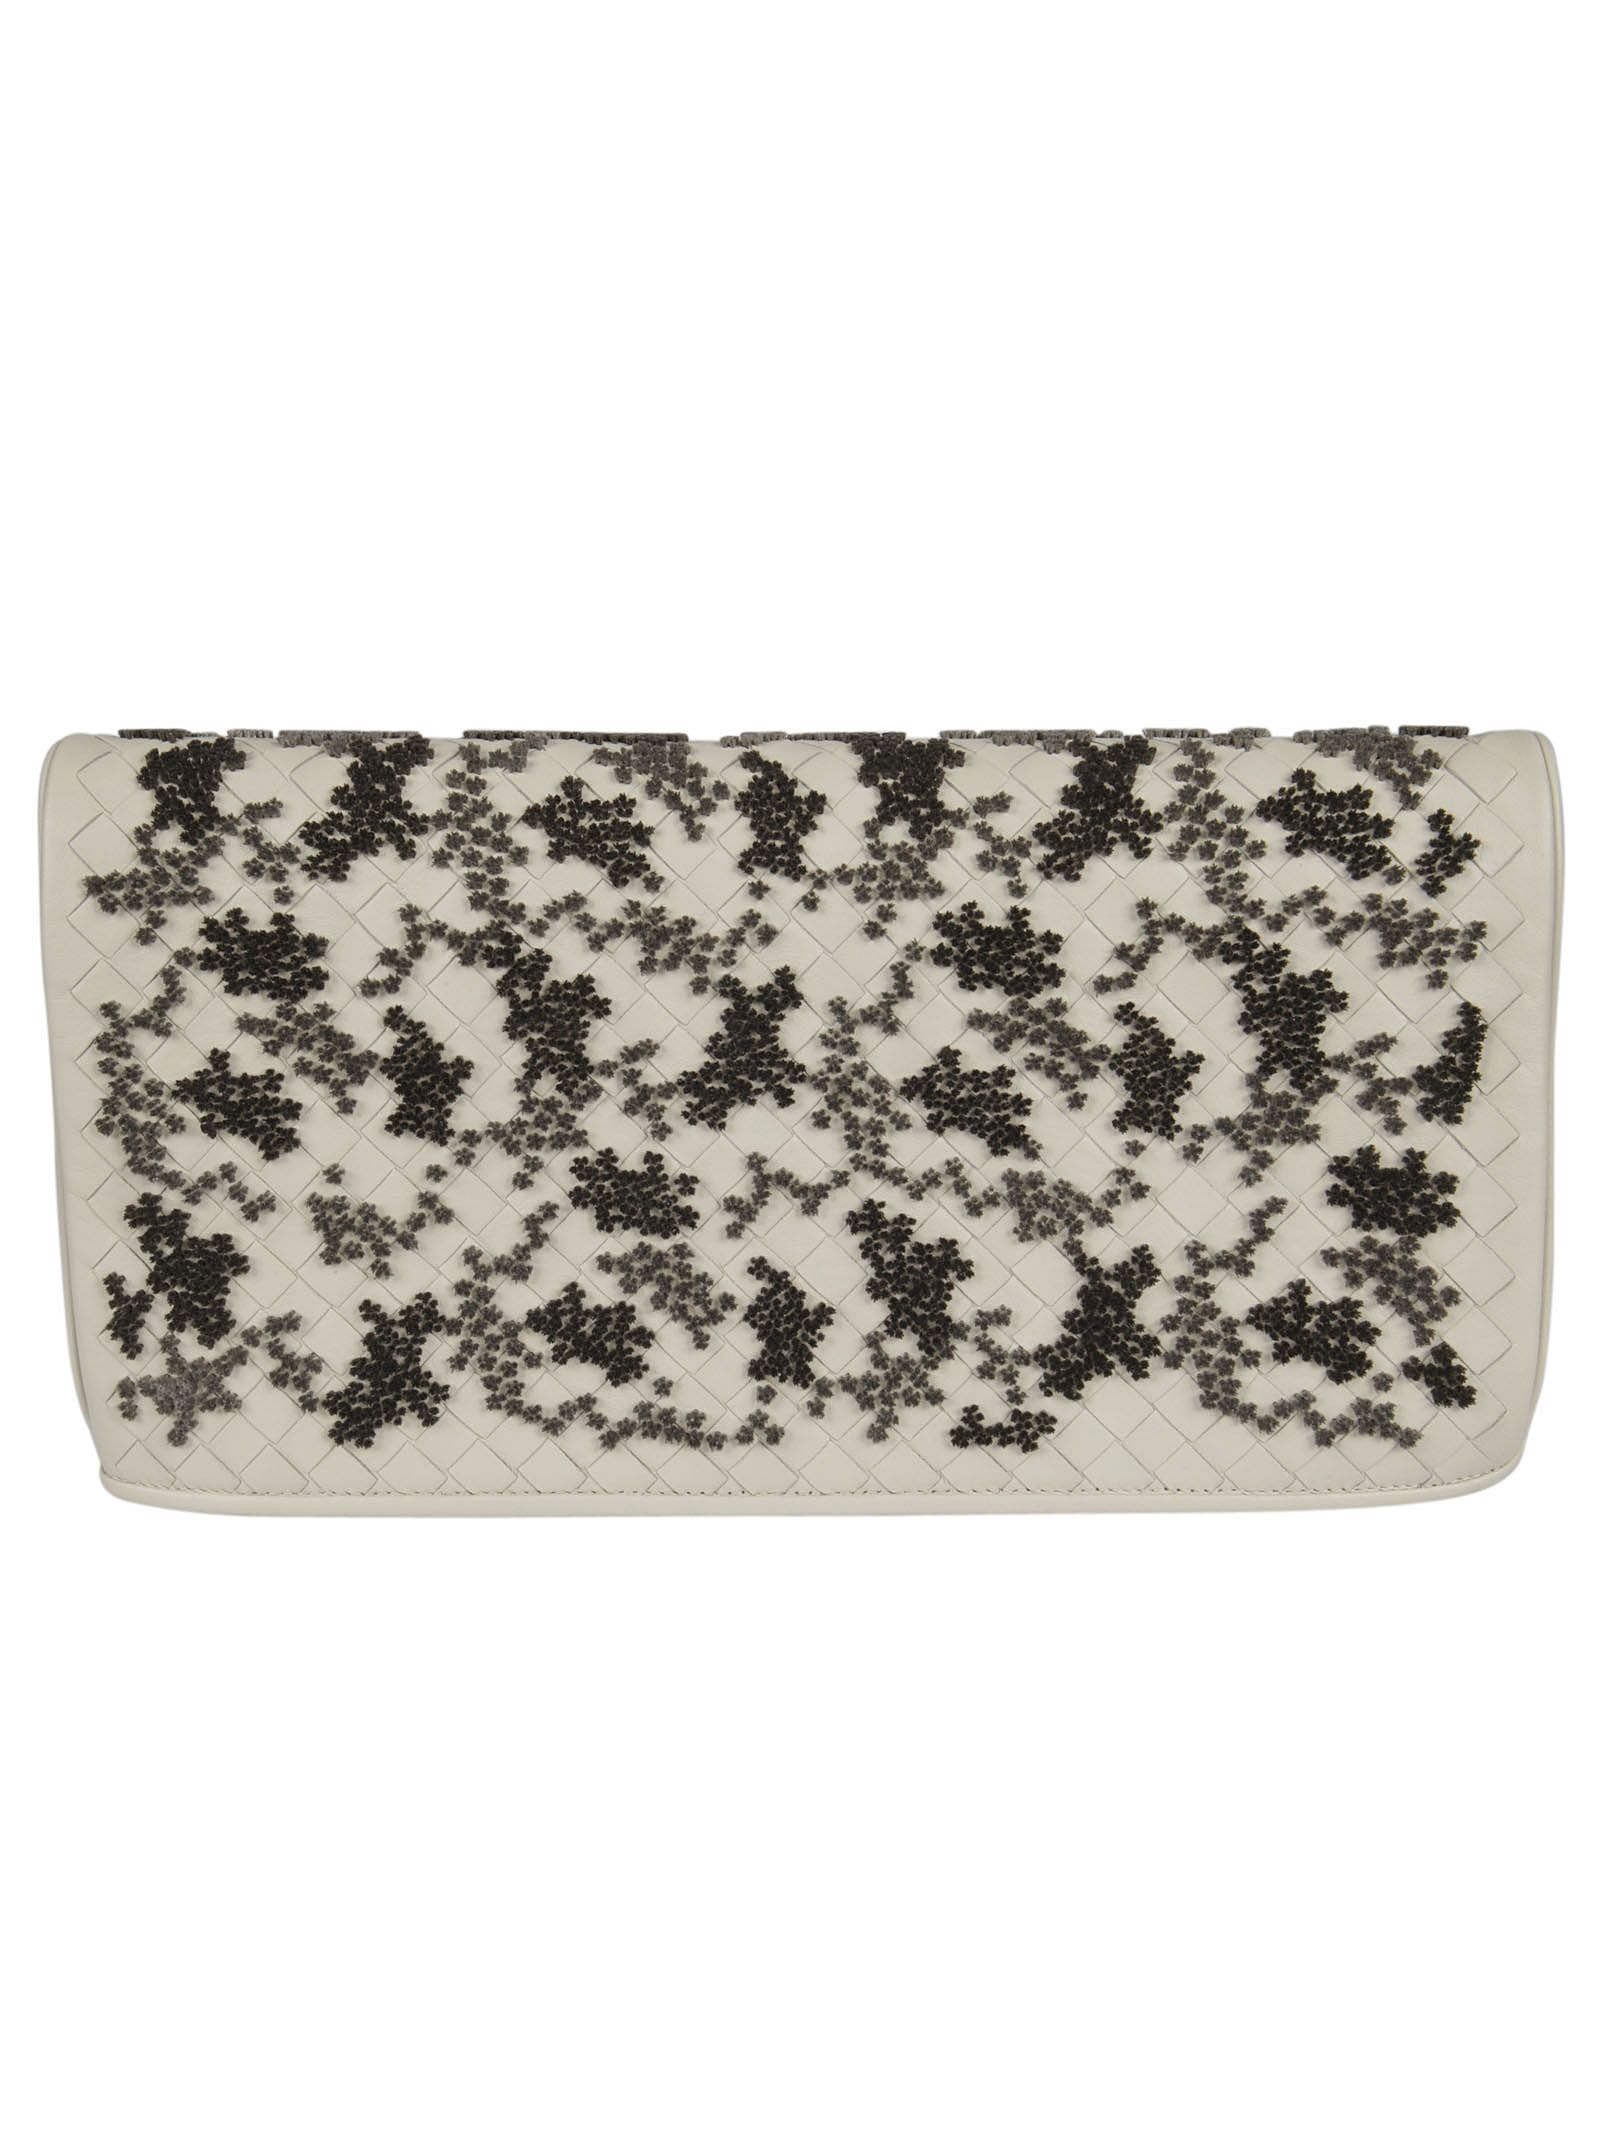 Bottega Veneta Bouquet Mist Clutch